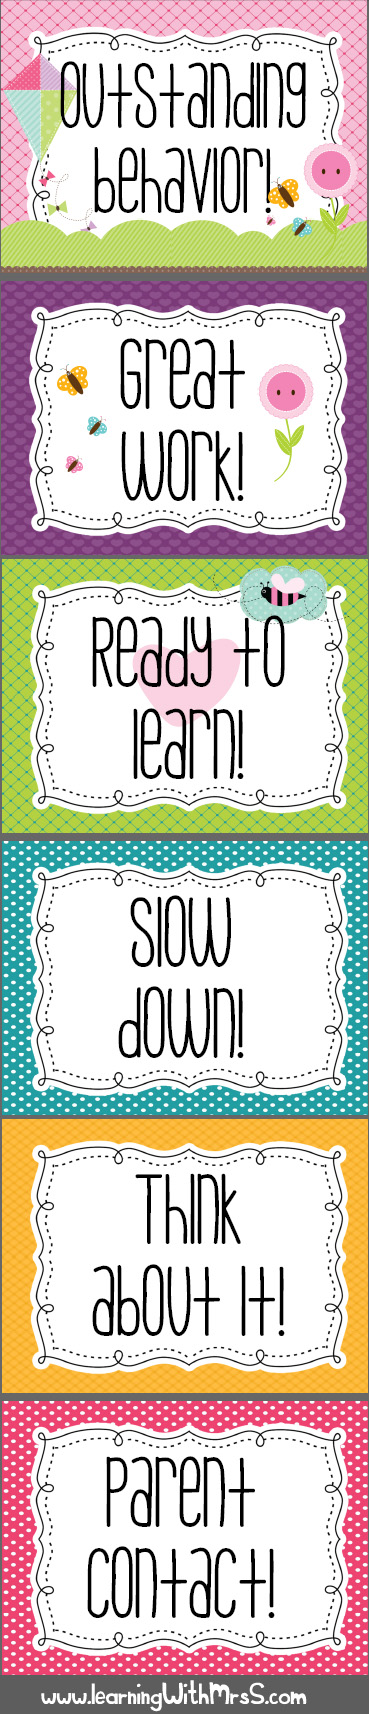 Behavior chart free printable love that it has options for students to go up not just down also rh pinterest